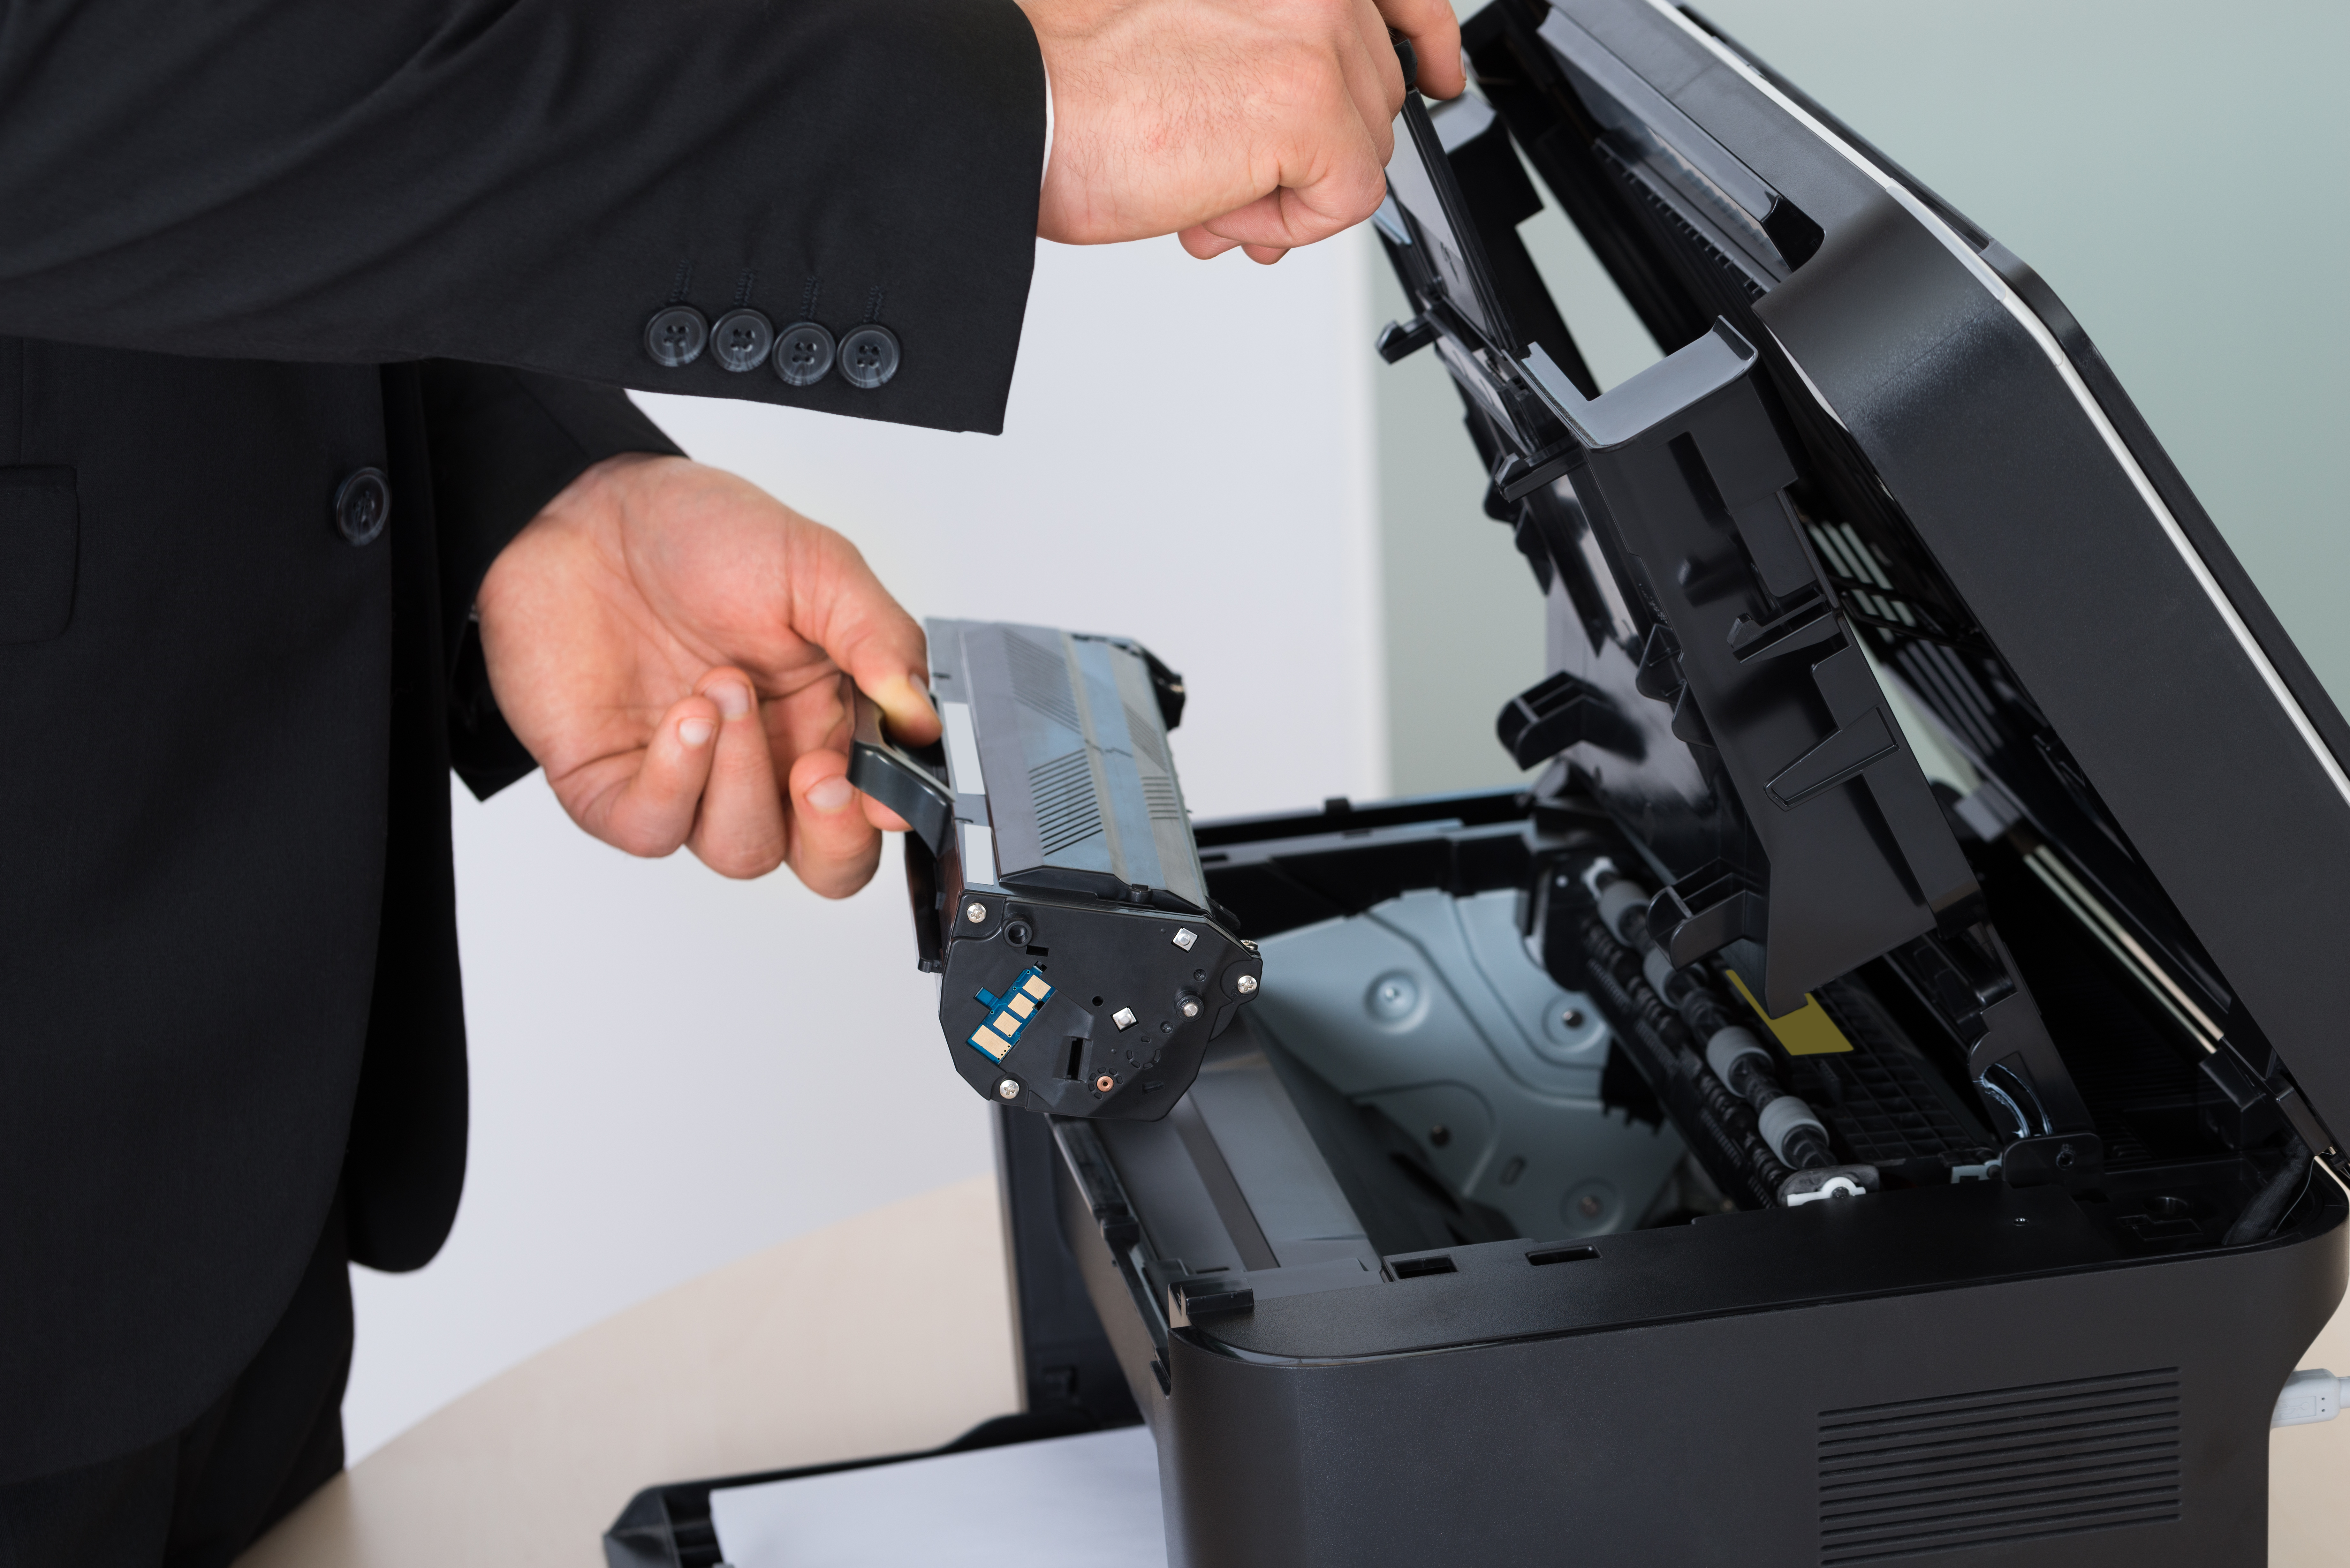 Printer Servicing And Repair Is Available In Charleston From The Office People. Call 843-769-7774